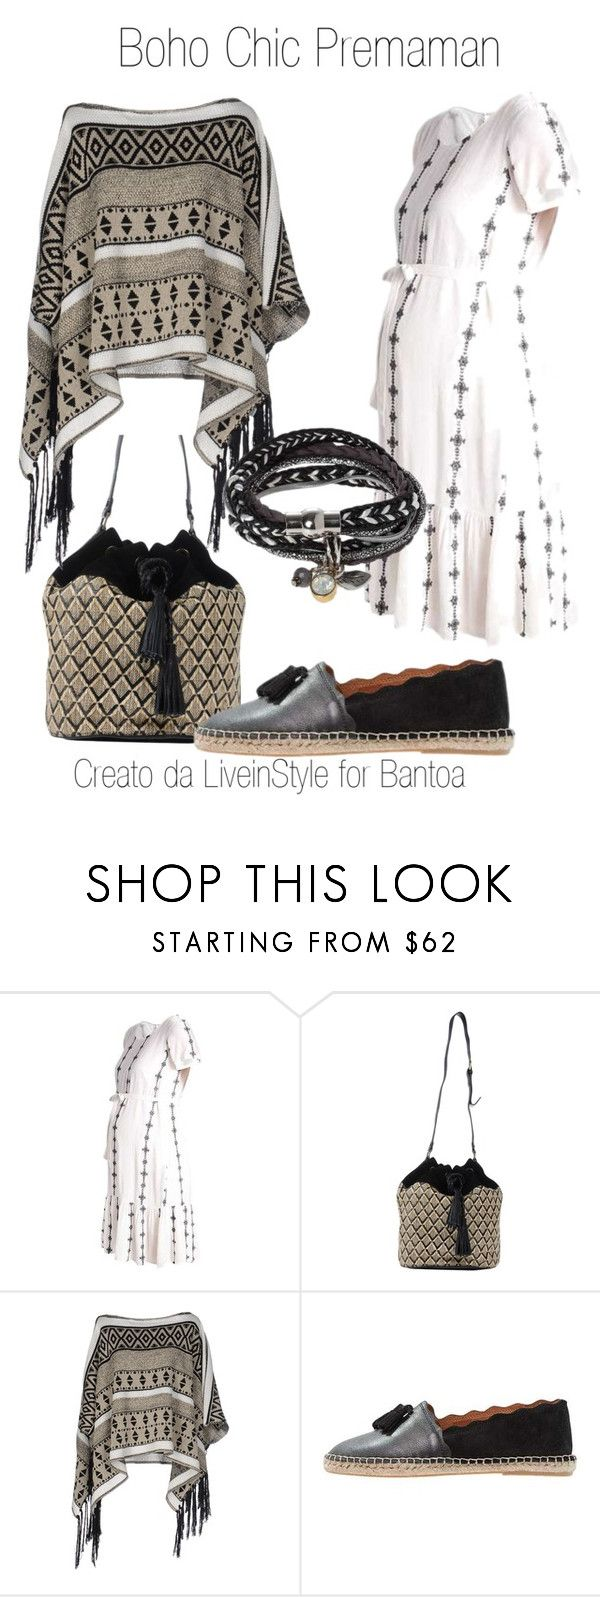 Boho Chic Premaman by liveinstyleyourlife on Polyvore featuring moda, Katia G., Sessùn and Estivo